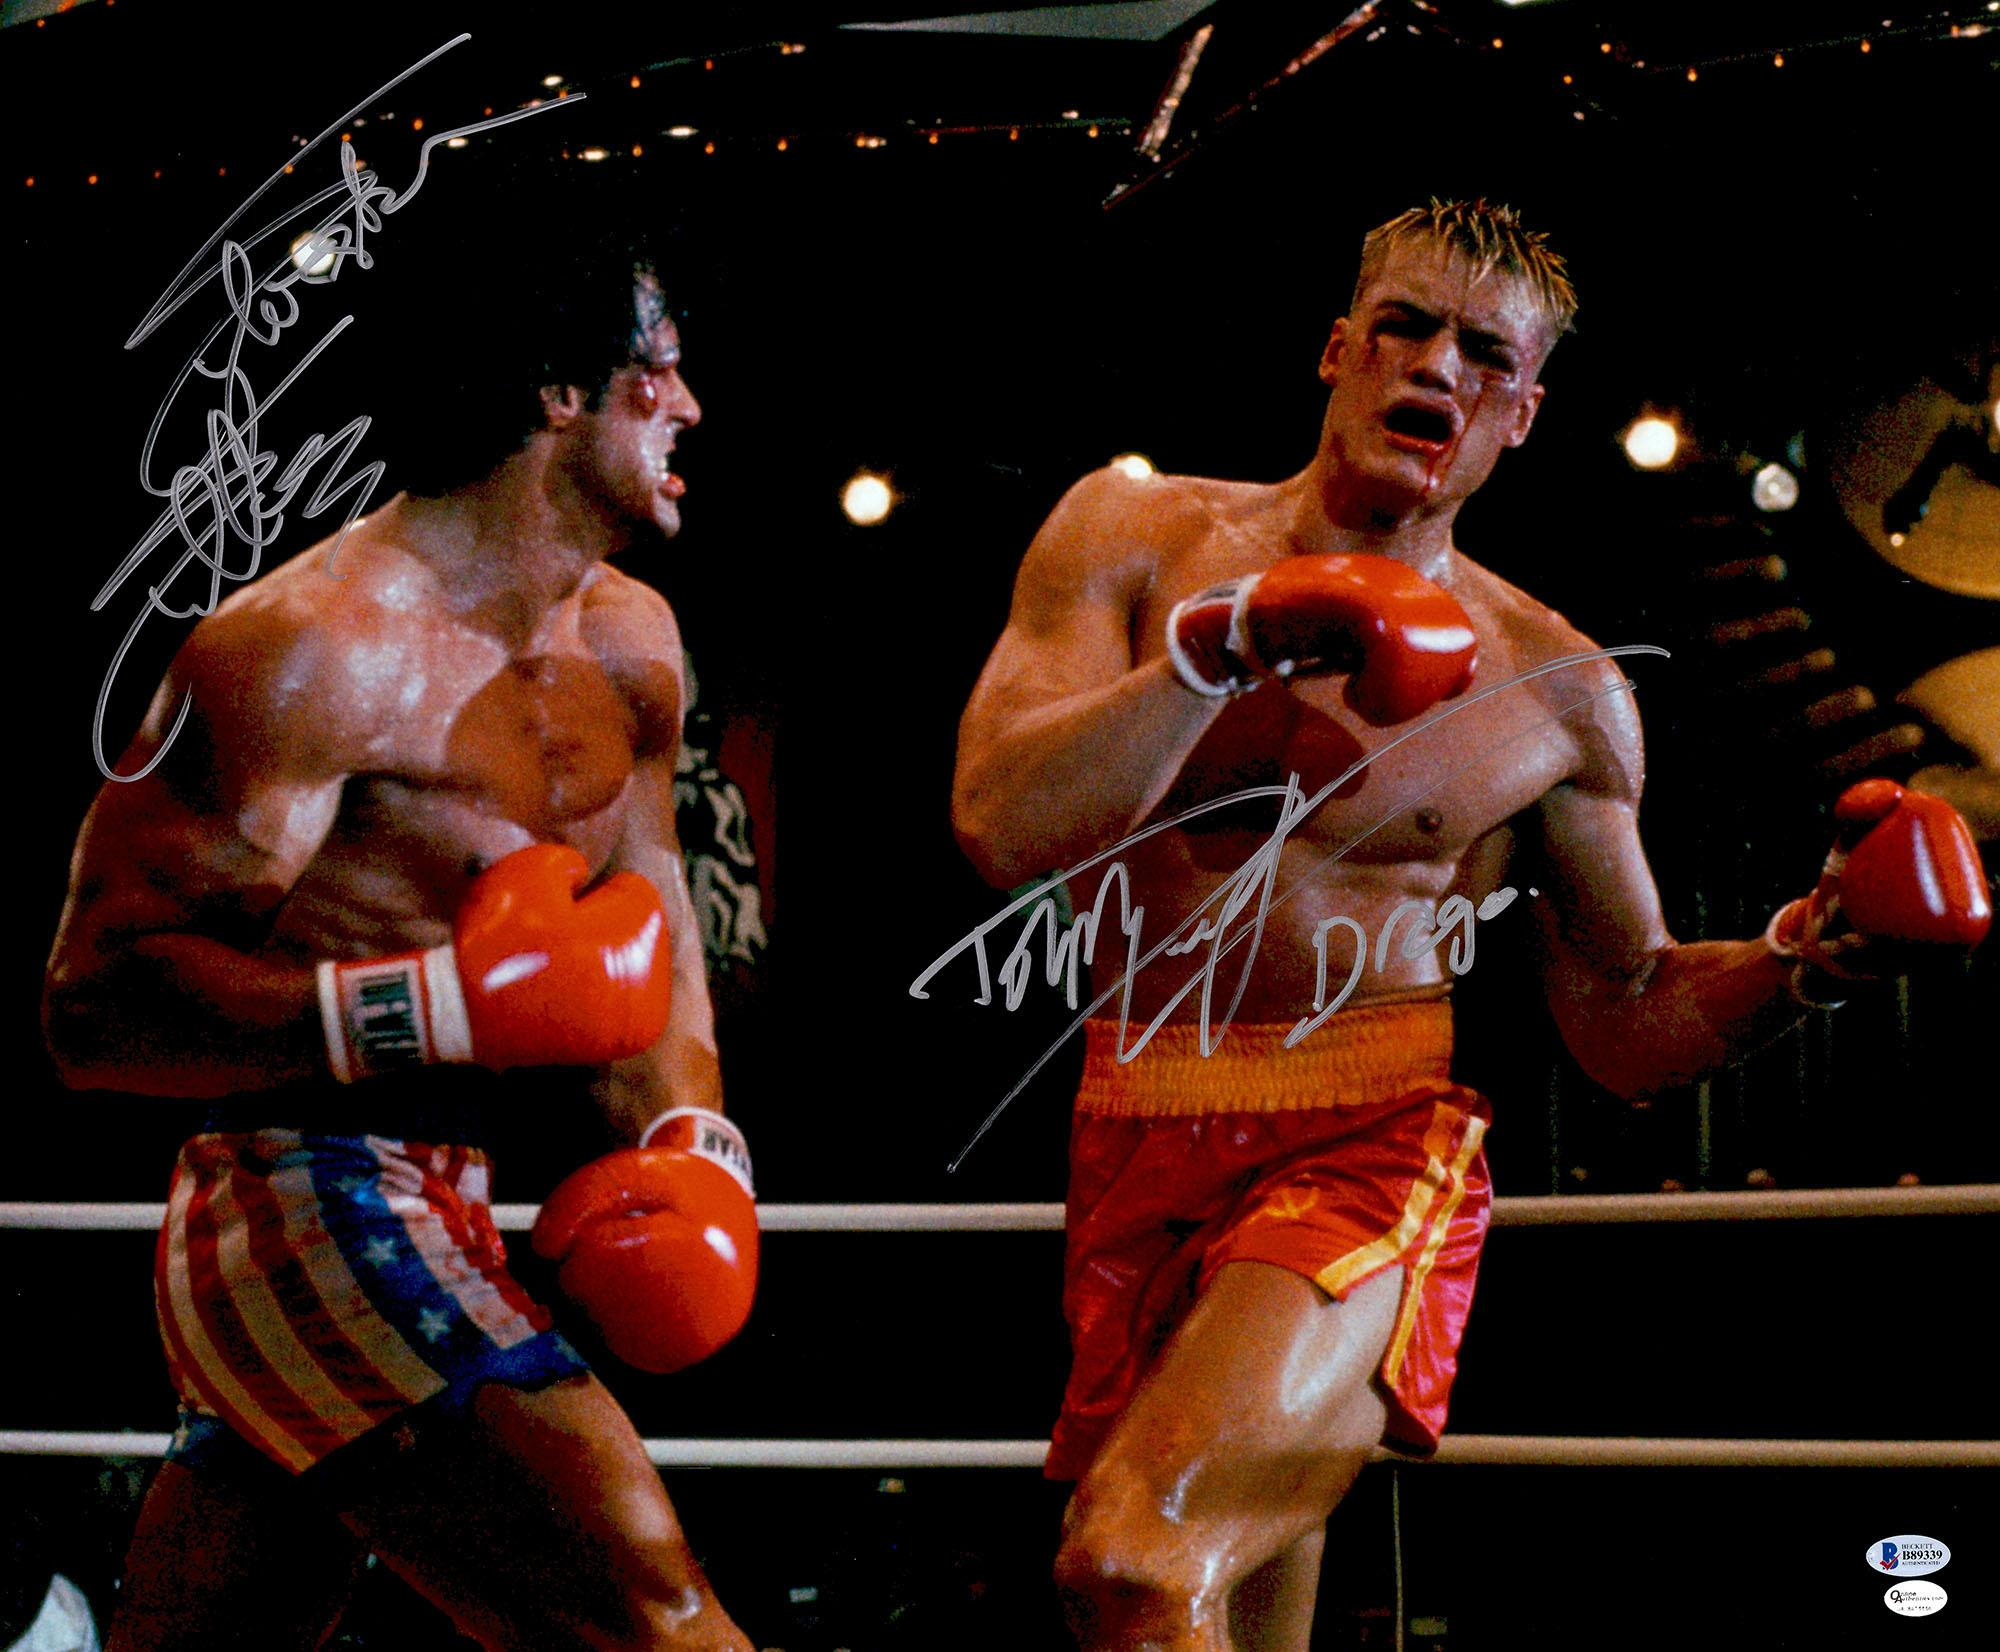 Rocky Memorabilia: Autographed Pictures, Authentic Signed Props